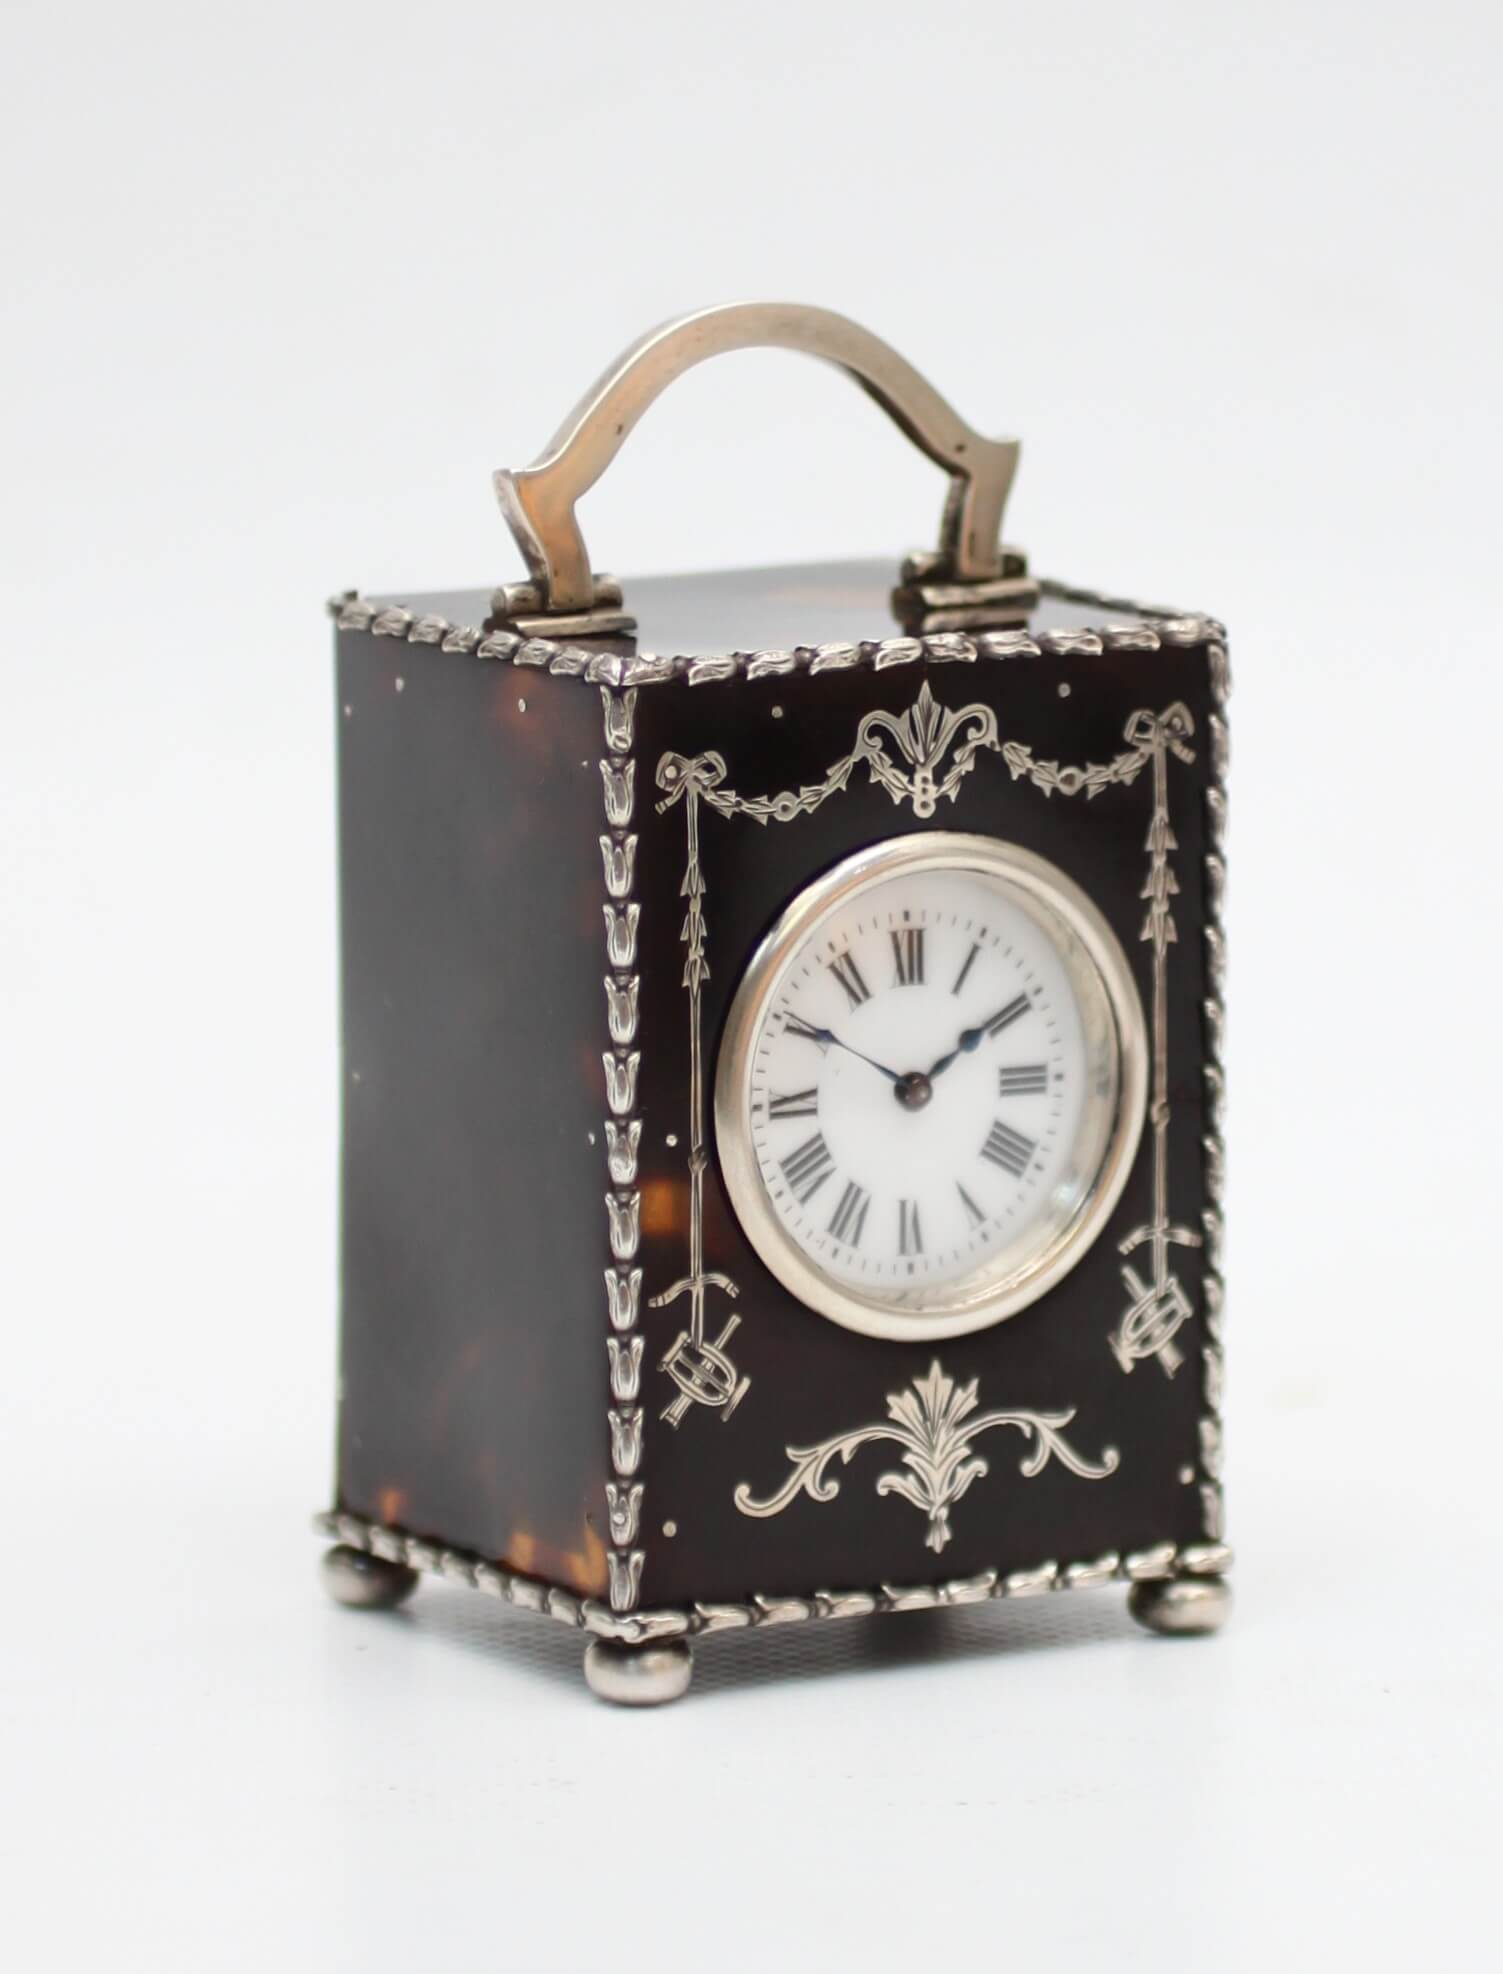 Miniature English Silver Tortoiseshell Carriage Clock London